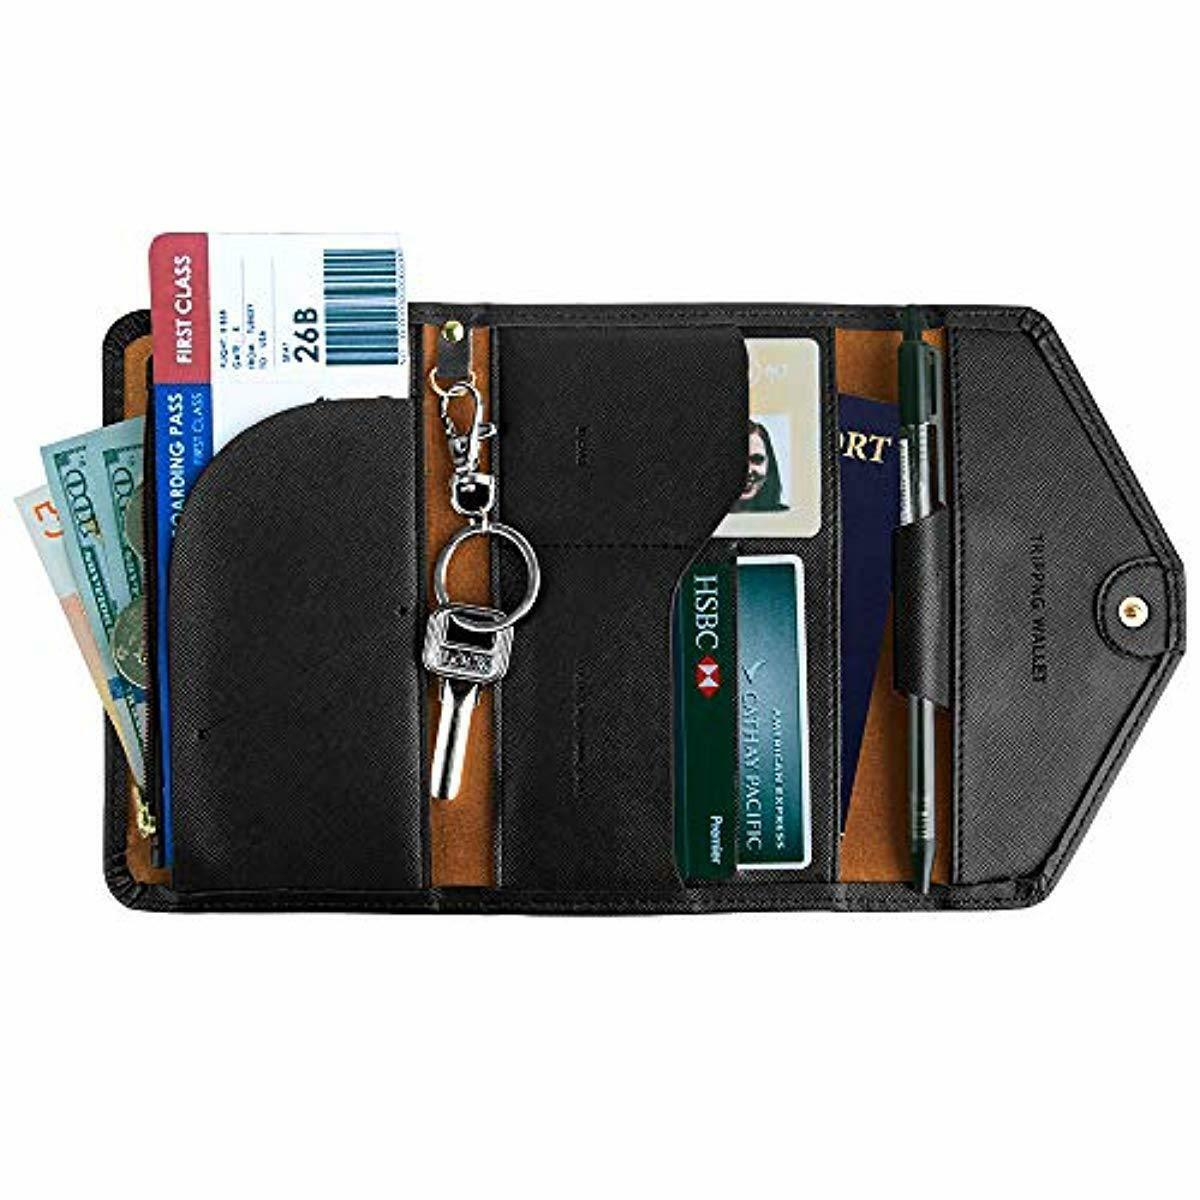 Details about Travel Passport Holder Security Neck Stash Pouch Wallet with  RFID Blocking